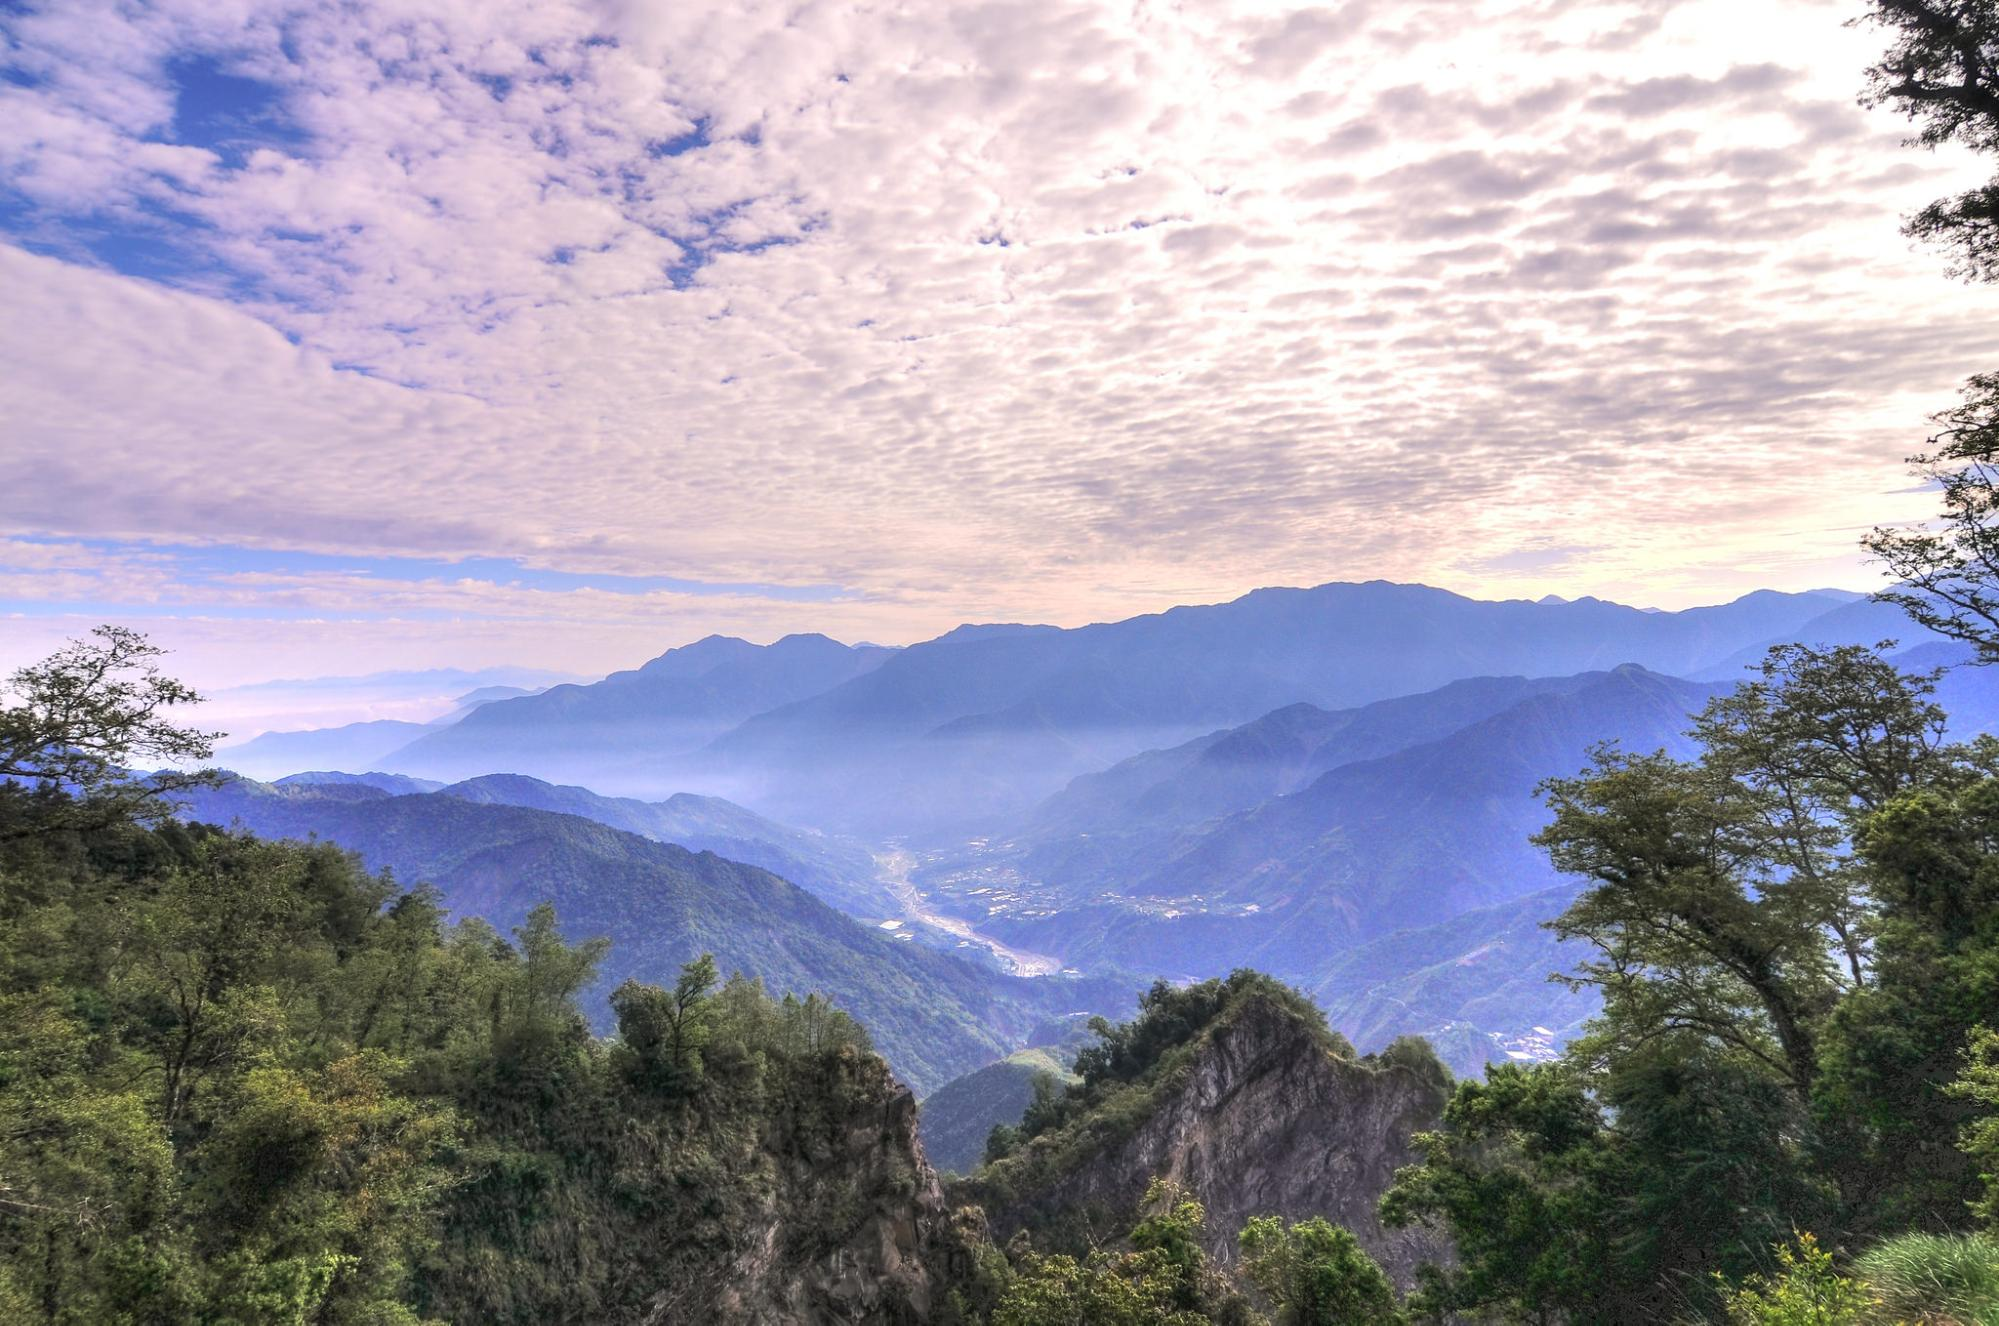 10 Mountains To Climb In Taiwan With The Most Incredible Views